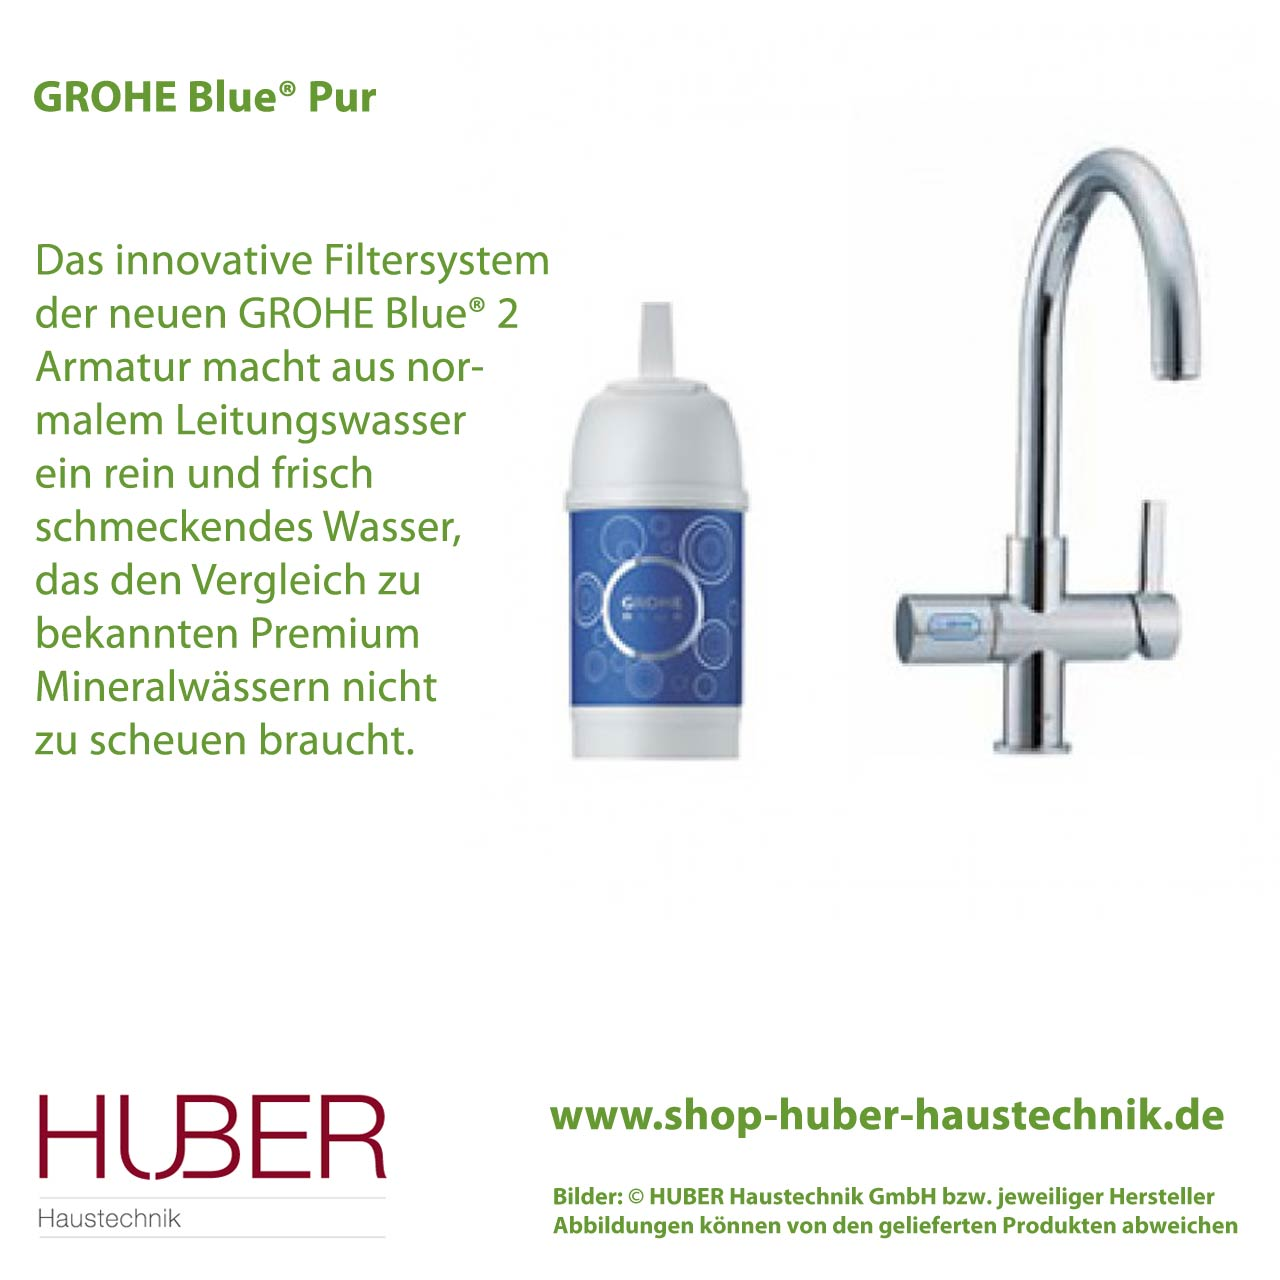 grohe blue pur trinkwasservitalisierung wasser huber haustechnik shop. Black Bedroom Furniture Sets. Home Design Ideas